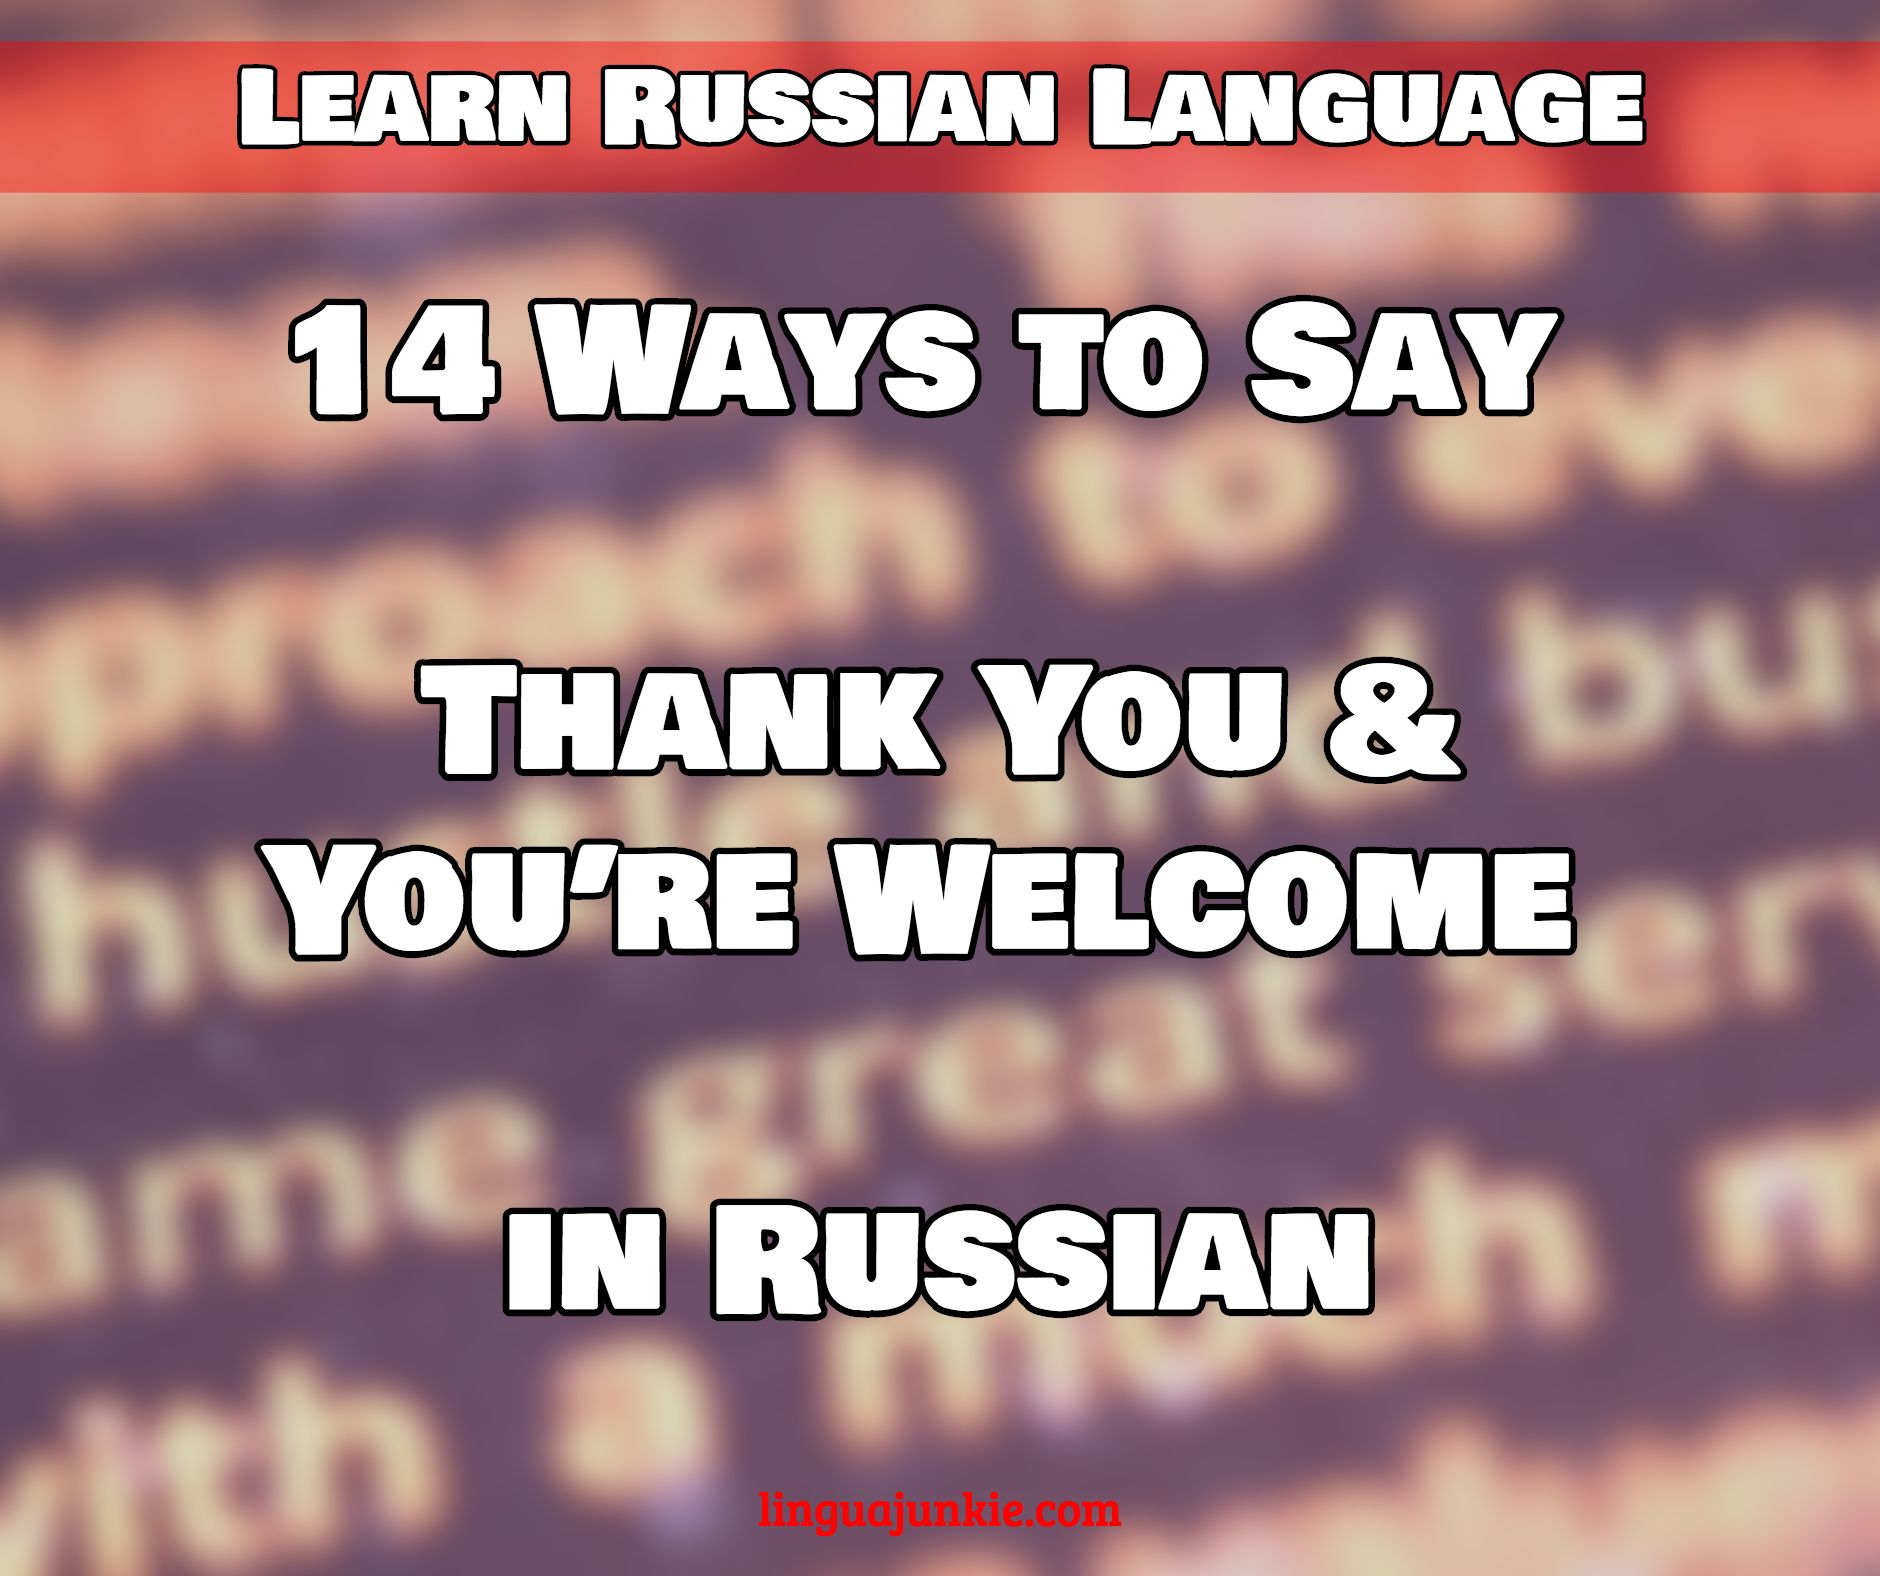 14 Ways To Say Thank You You Re Welcome In Russian Learn Russian Language Linguajunkie Com Russian Language Learn Russian Russians Sayings